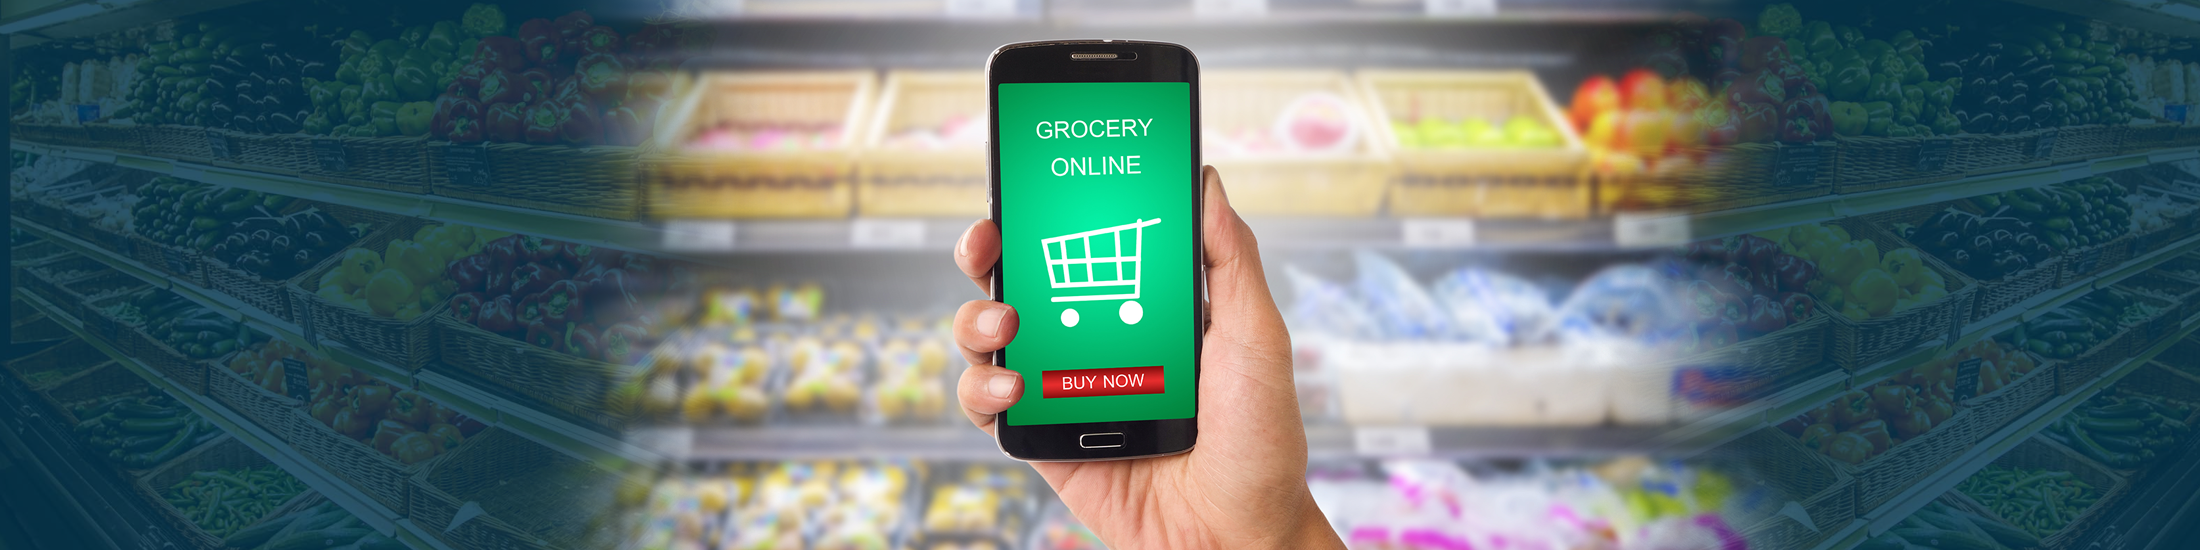 Grocery Delivery Apps See Record Growth amid Pandemic Sheltering